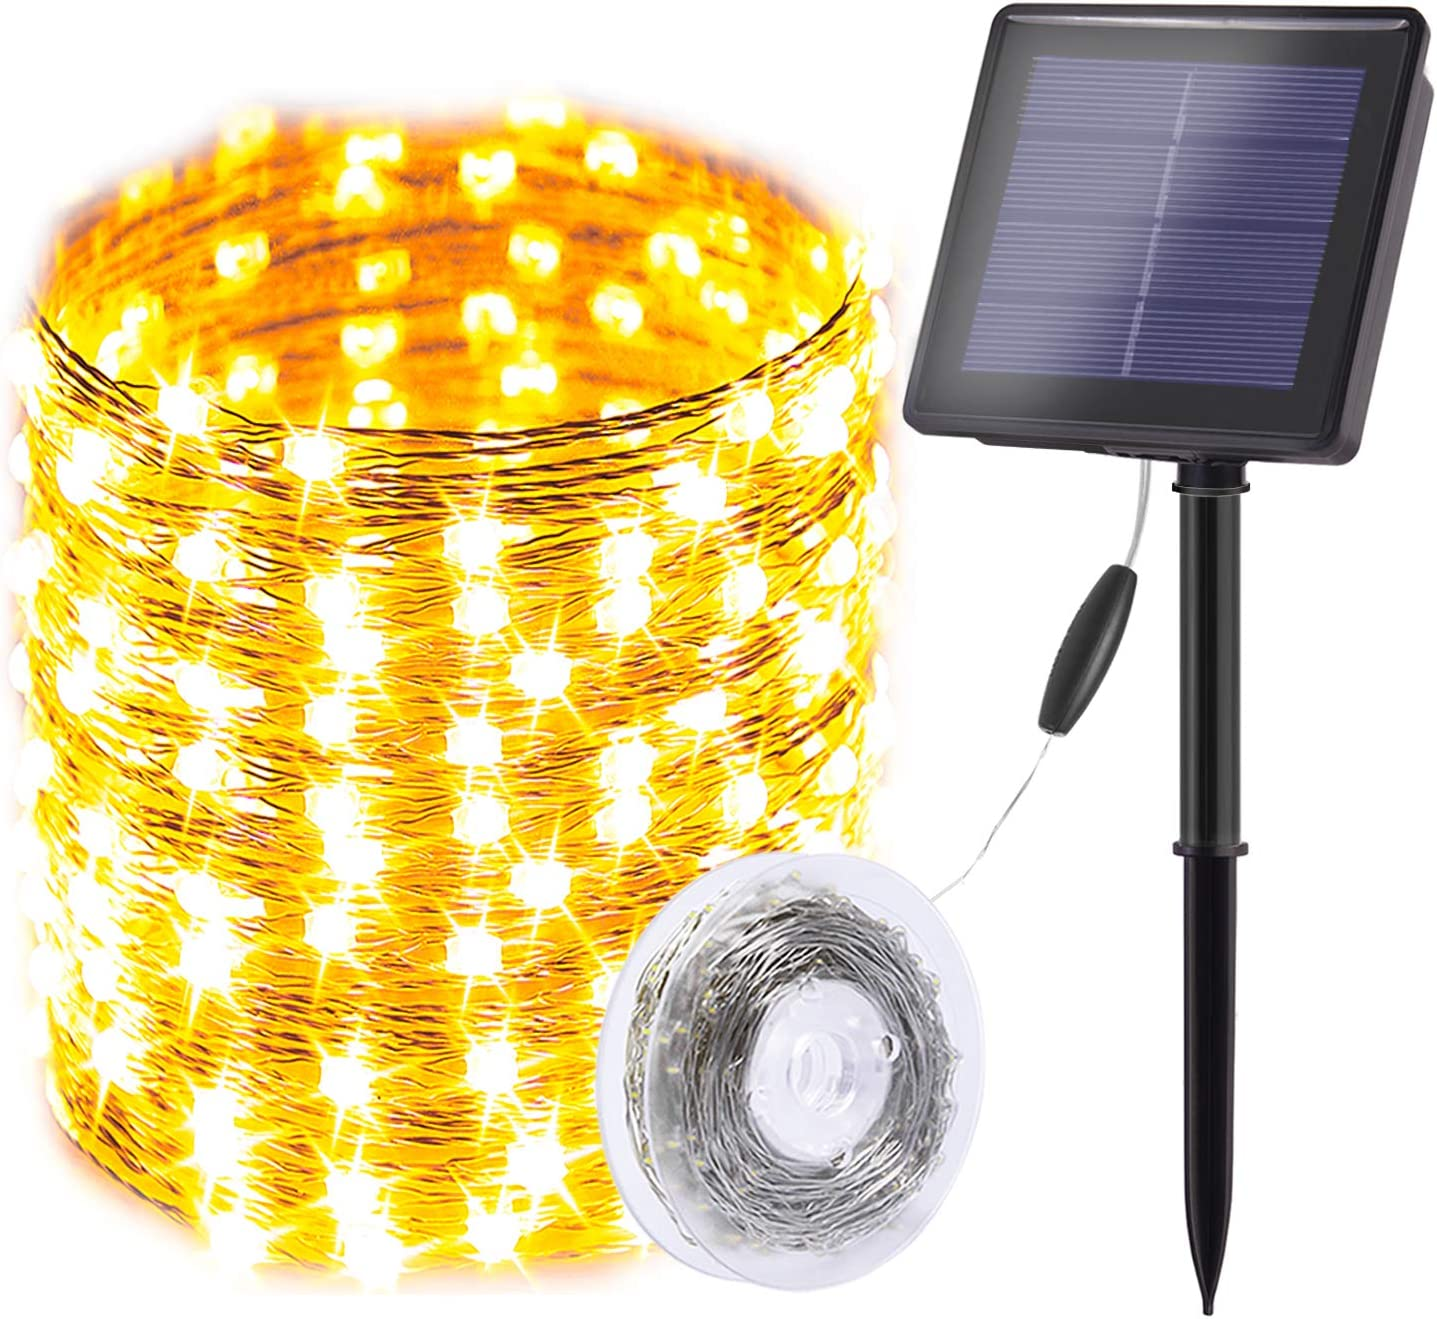 Solar String Lights Outdoor,200 LED Total & 75 Ft Ultra Long Starbright Solar Light with 1800 Mah Battery Backup,8 Modes Solar Fairy Lights for Garden Patio Yard Party Decoration